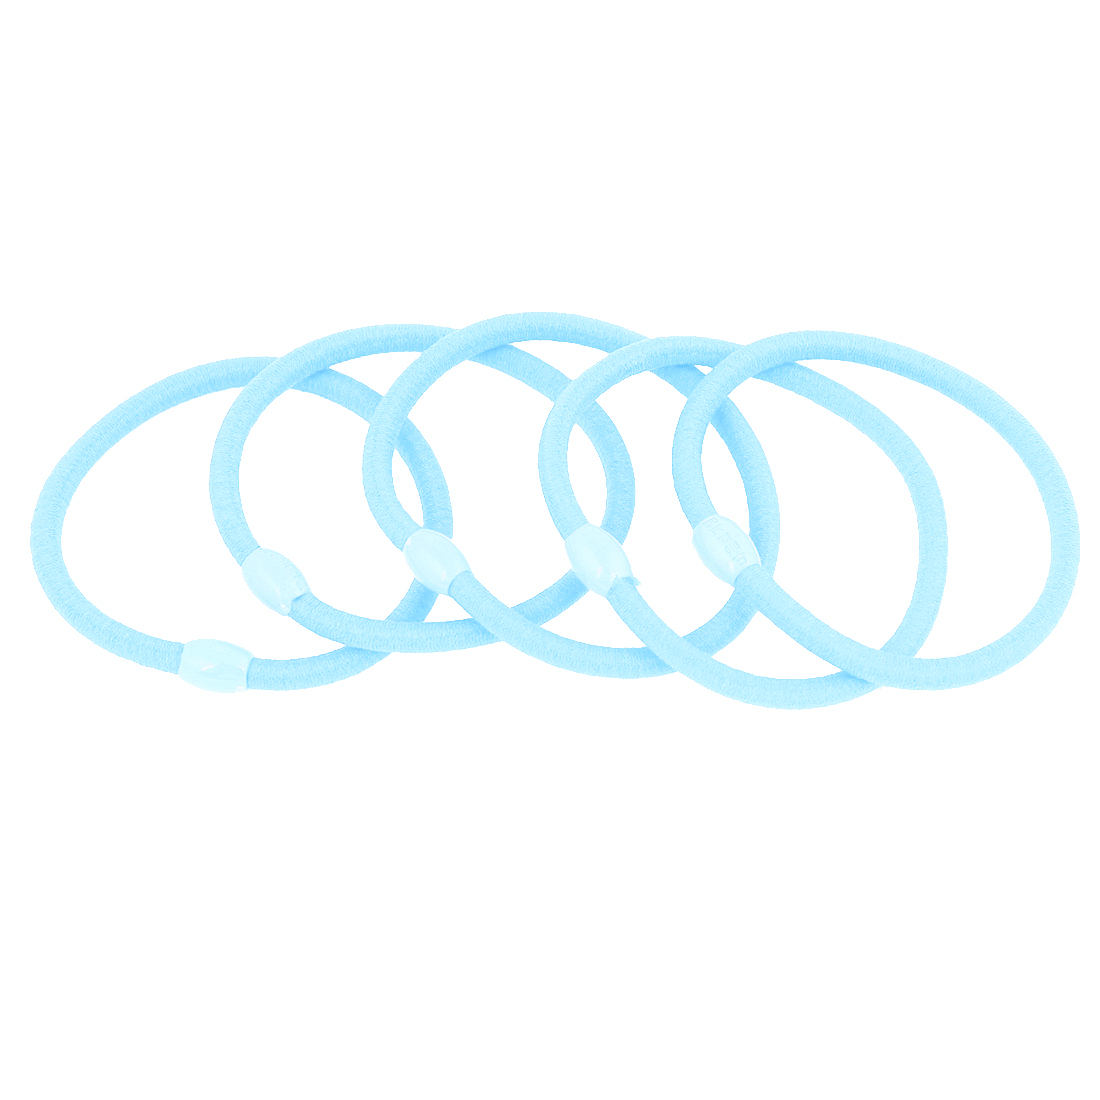 5 Pcs Ladies Ponytail Holder Sky Blue Elastic Hair Rope Ties